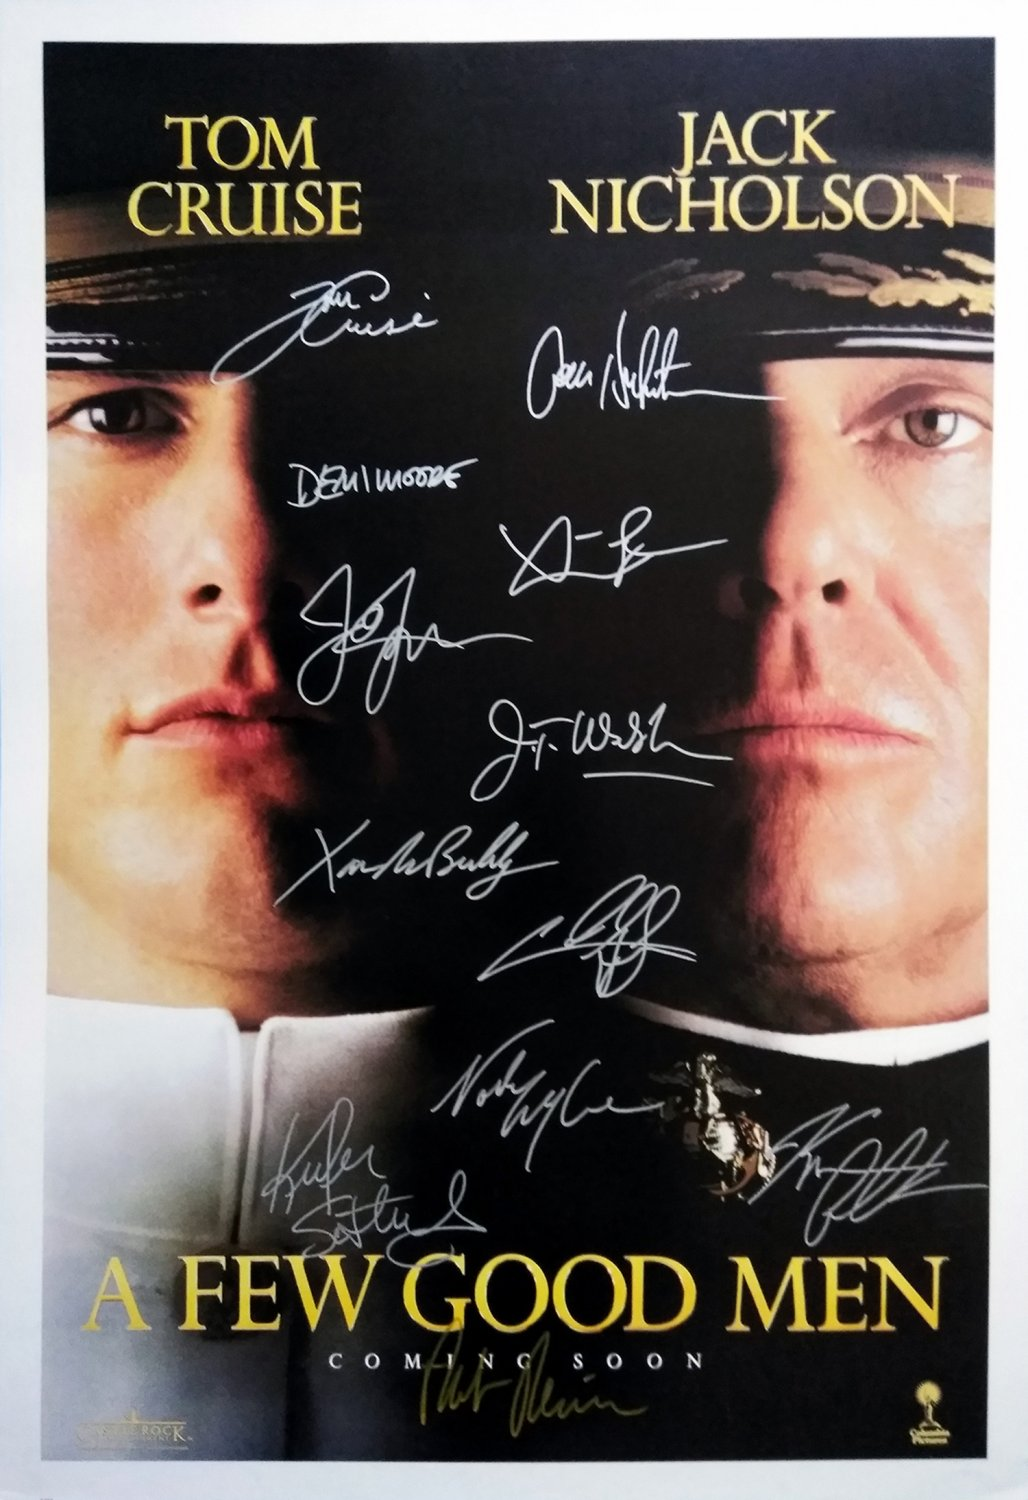 Signed A FEW GOOD MEN Movie Poster by 12 members of the Cast